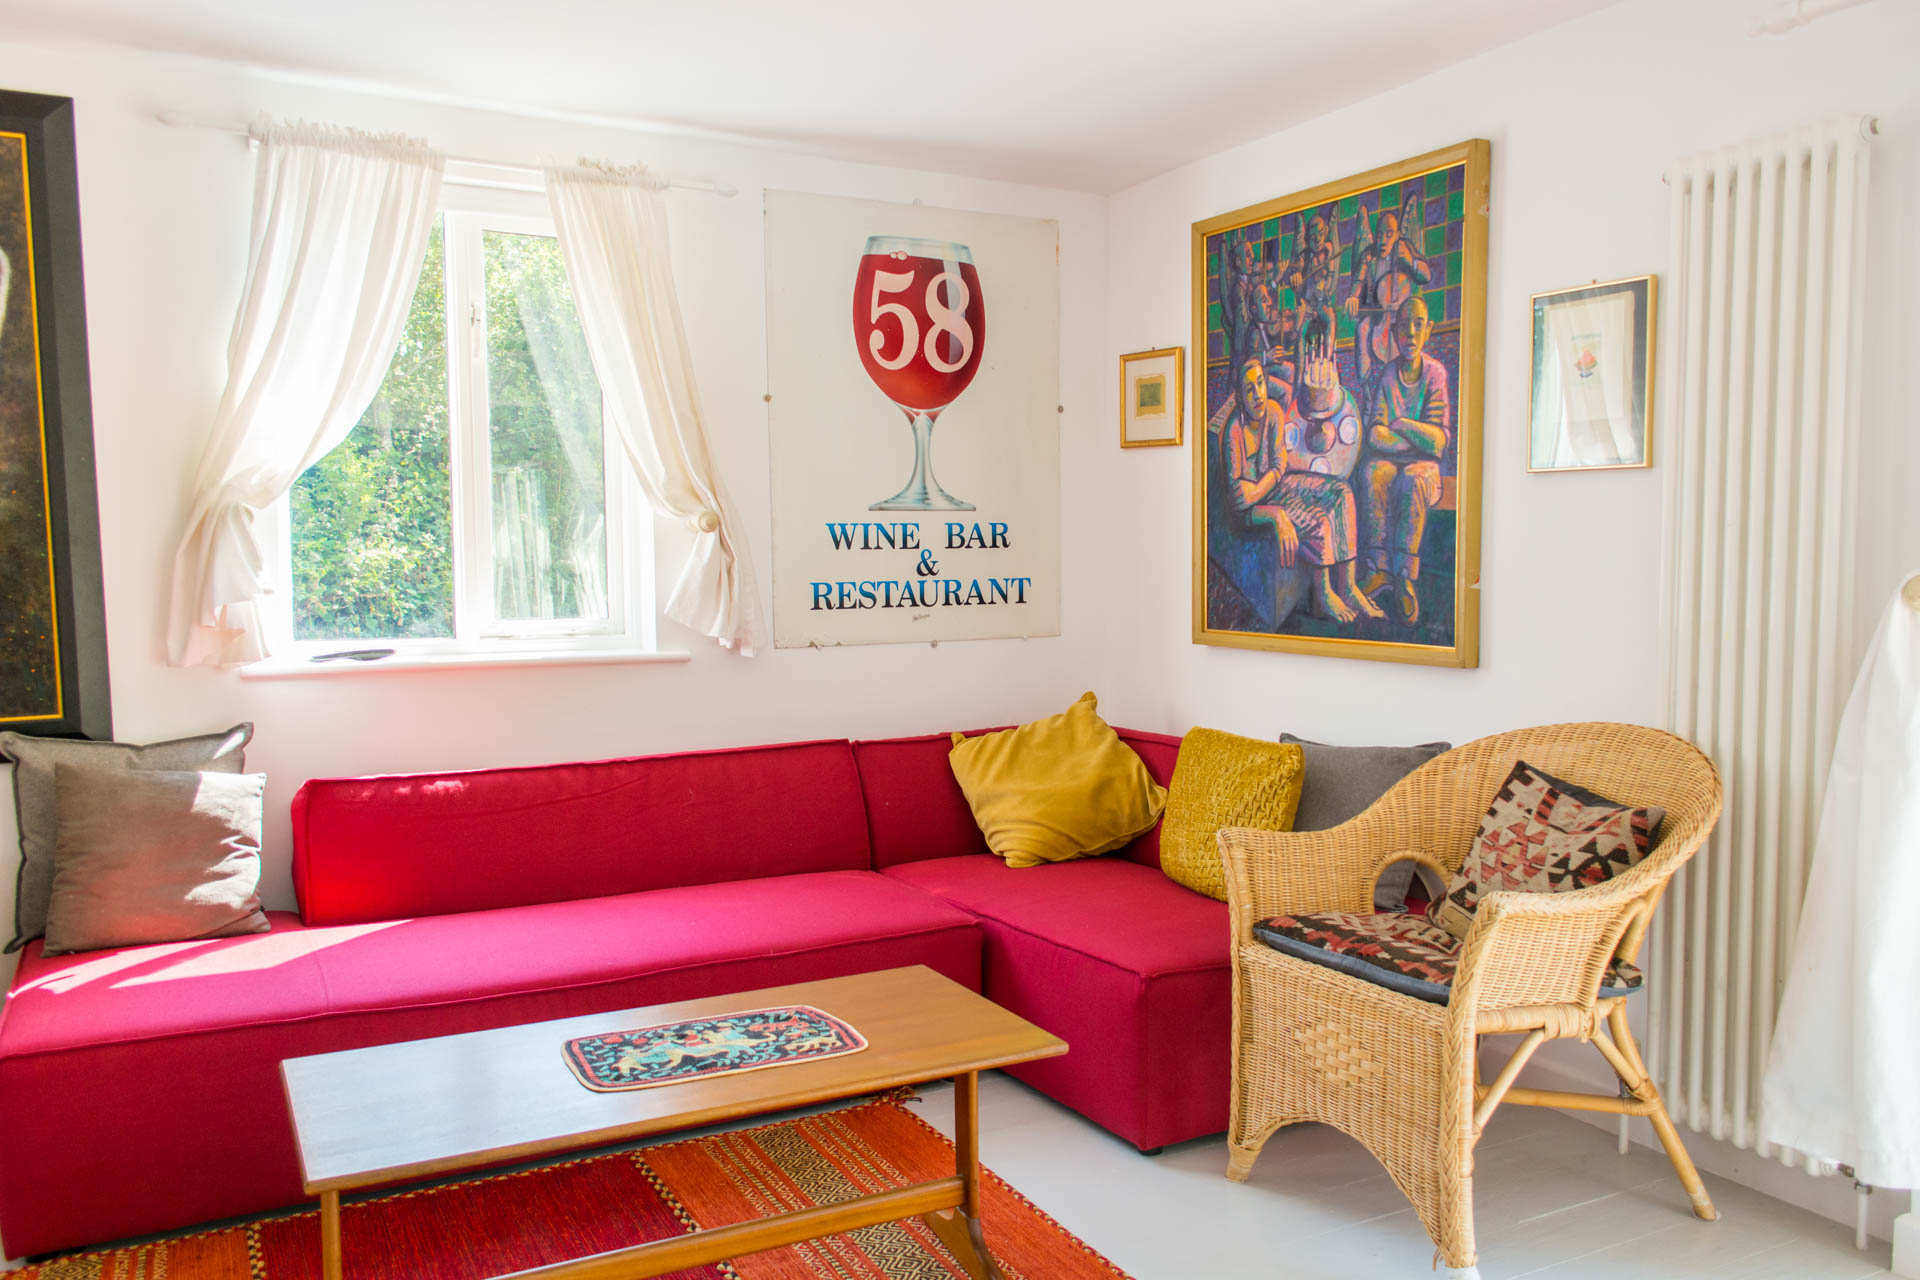 Image showing second family living area with red couch and artwork.